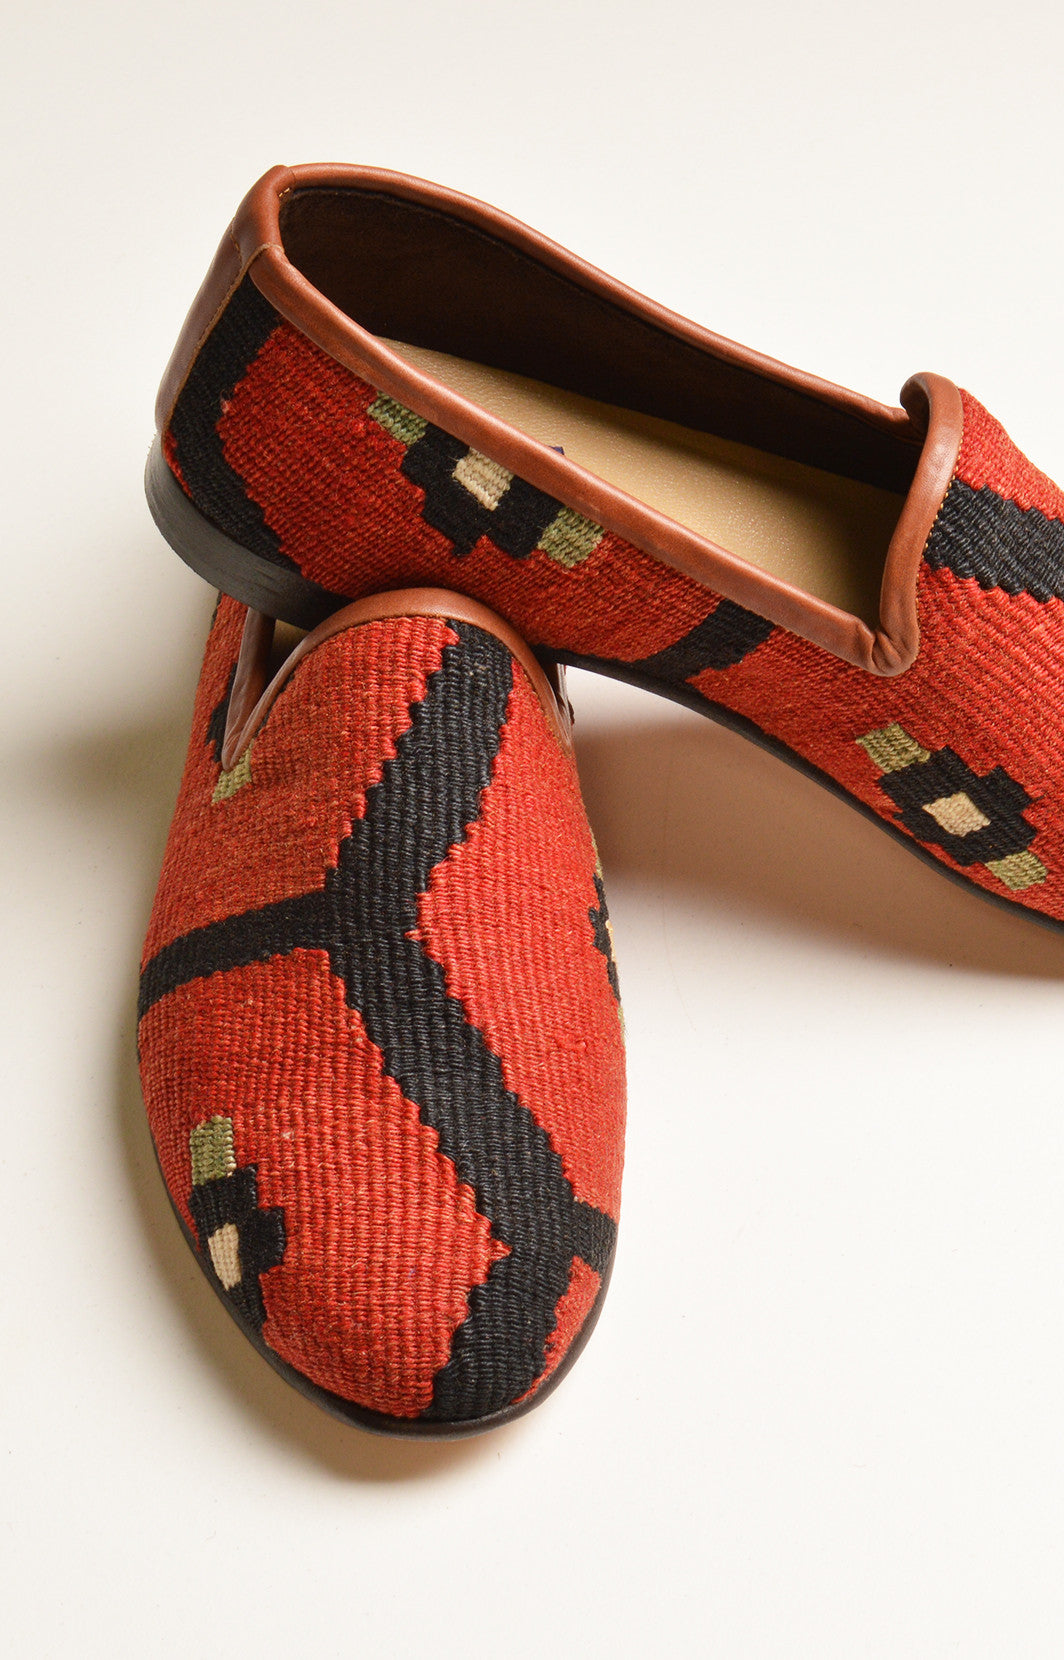 dapper mens shoes, mens loafers, red shoes, mens rug shoes, kilim loafers, mens res ipsa shoes